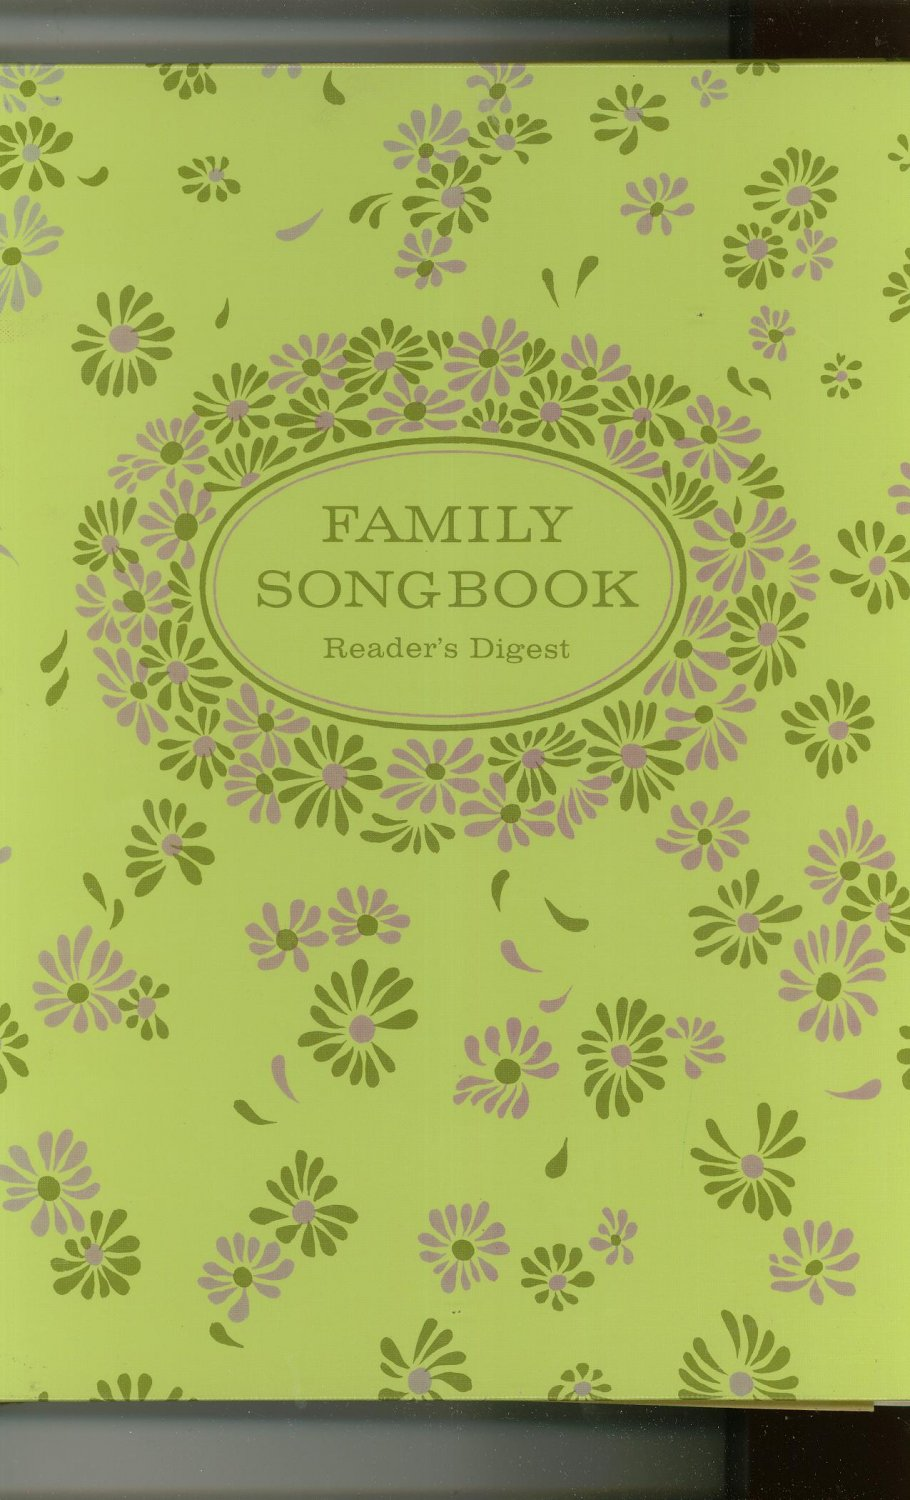 Vintage Family Song Book by Reader's Digest 1969 Shipping Special